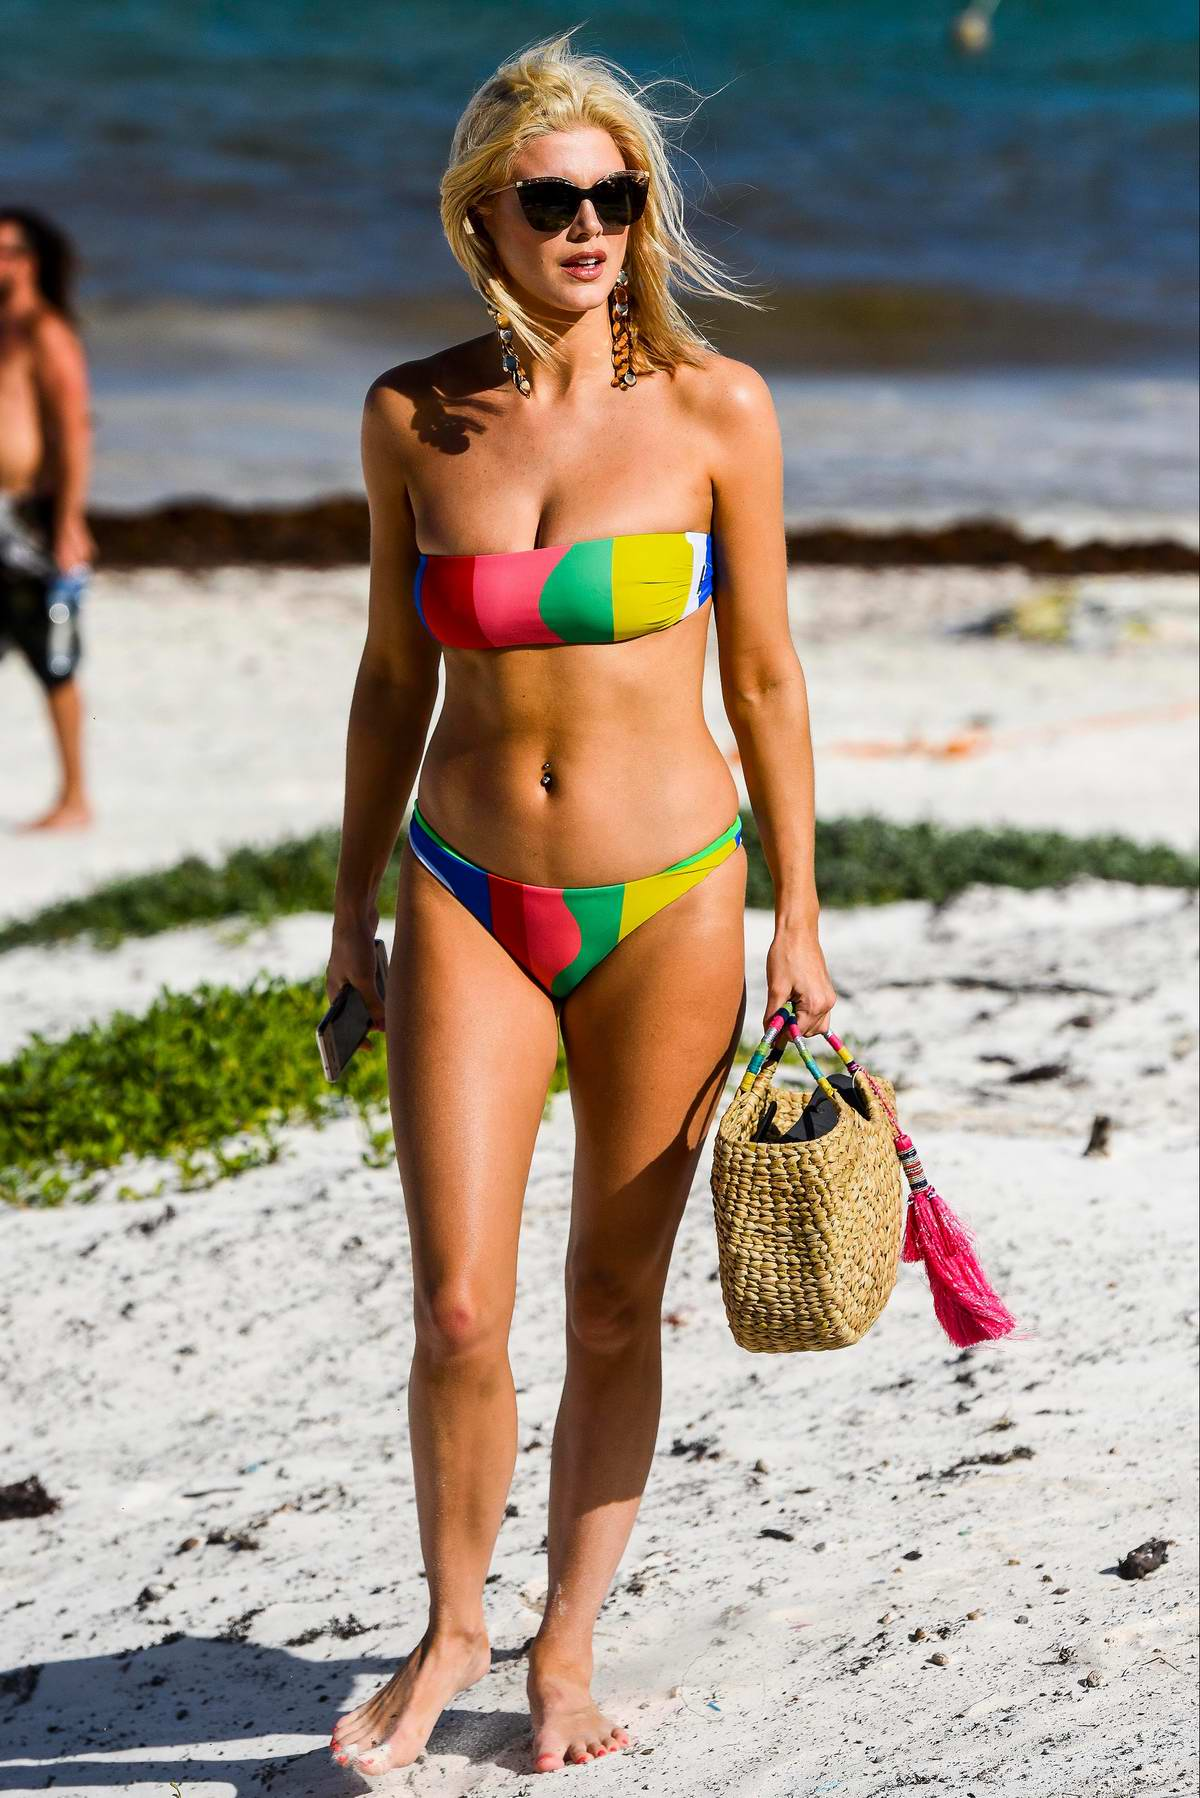 Ashley James looks stunning in a colorful bikini while hanging out at the beach during her vacation in Tanzania